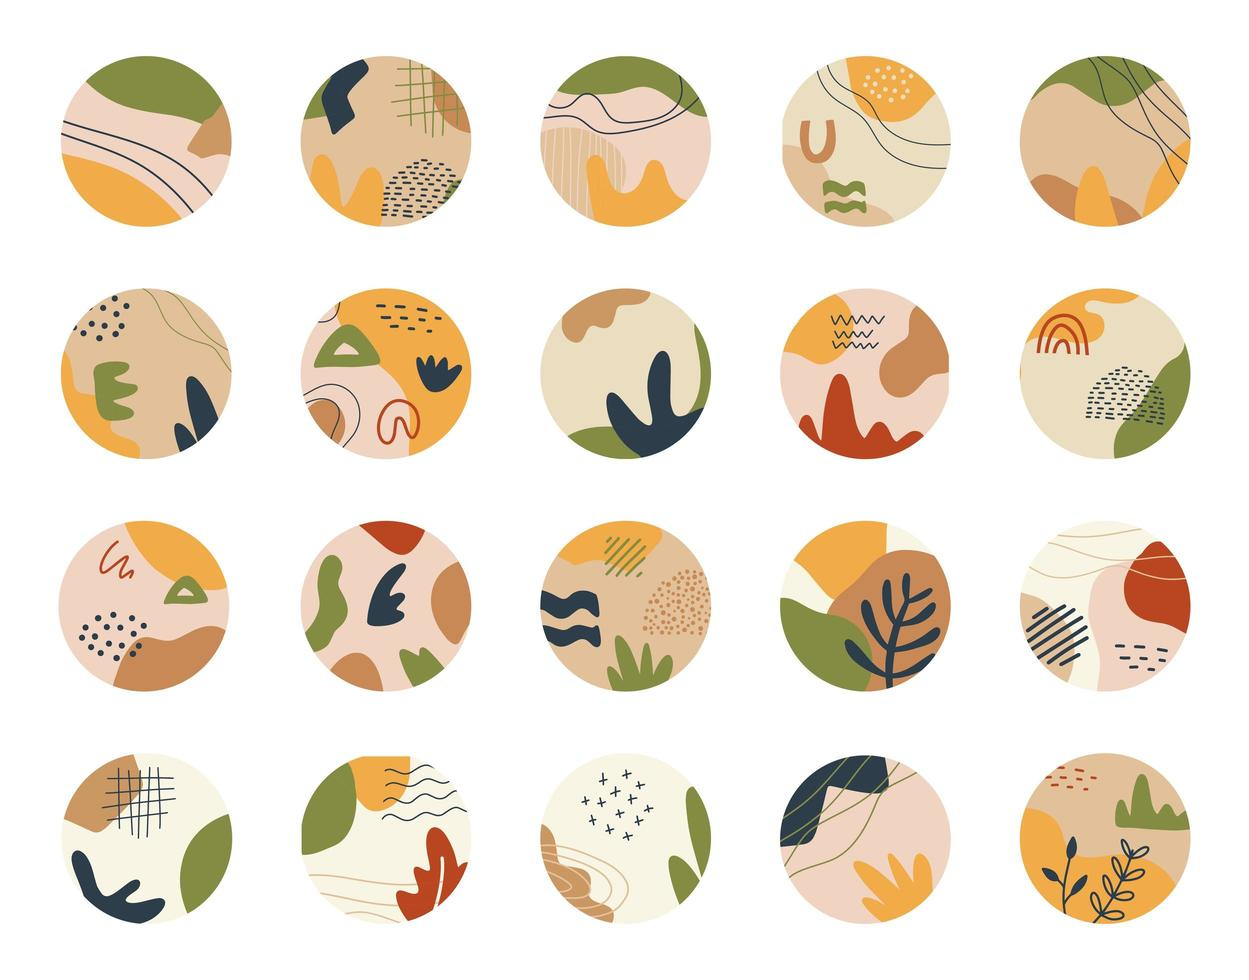 Trendy round asbtract shape icons for social media vector